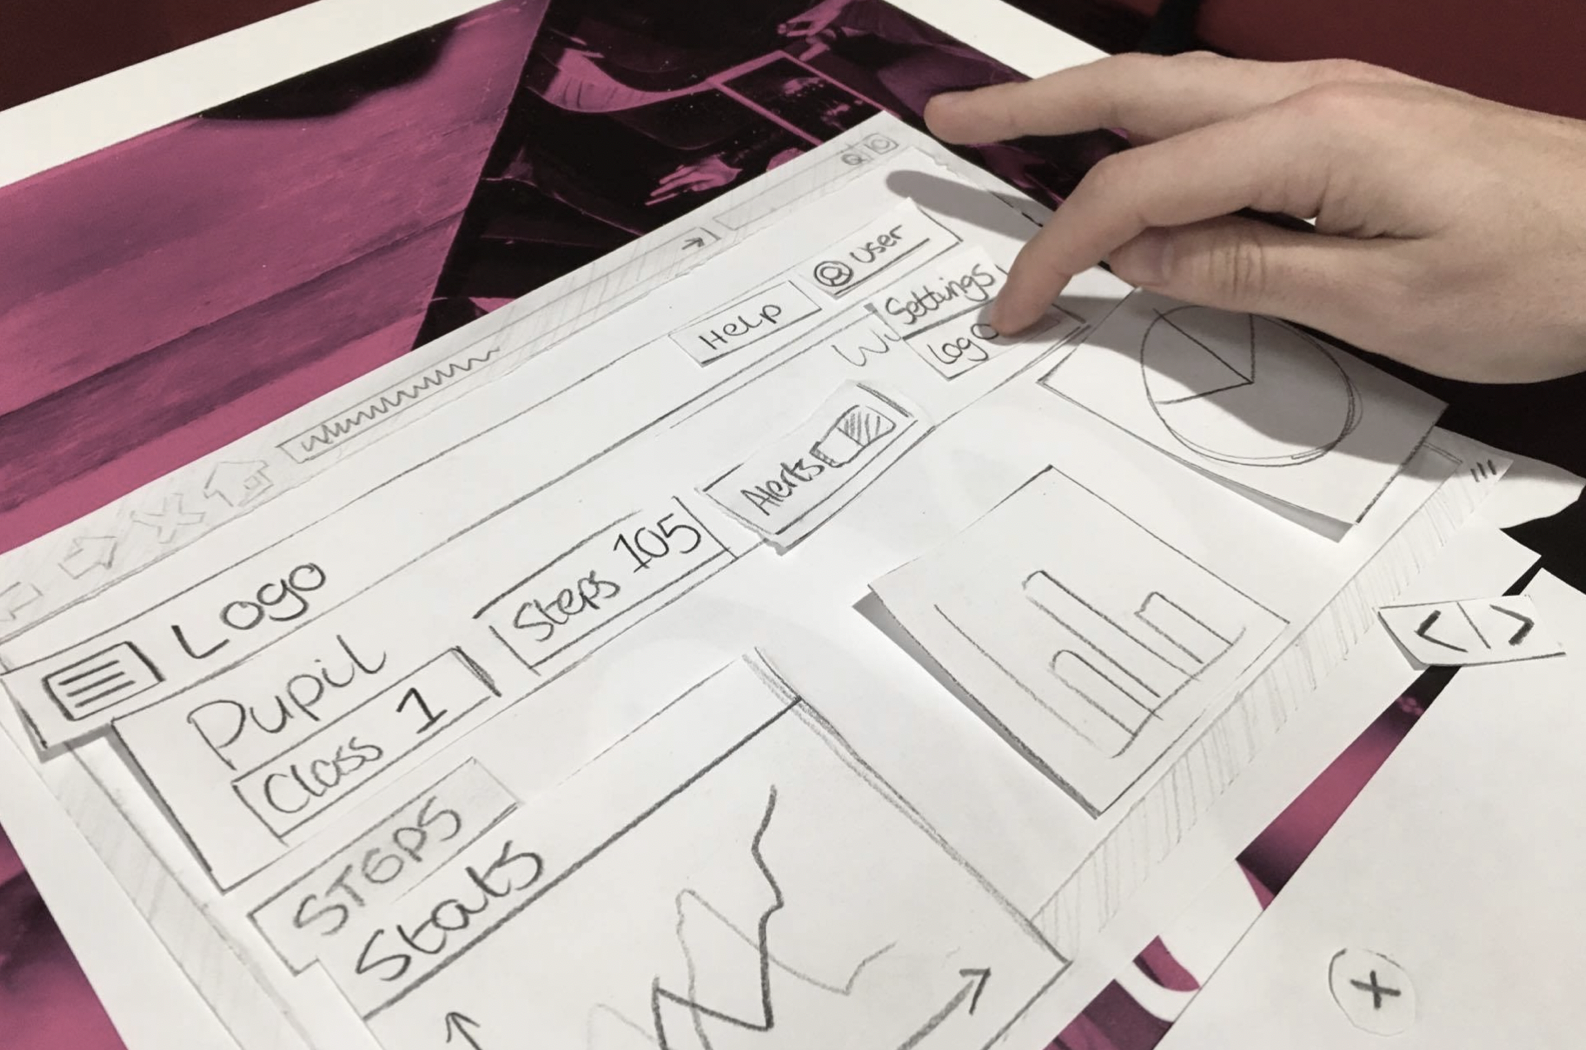 Paper prototyping the system UI with a subject